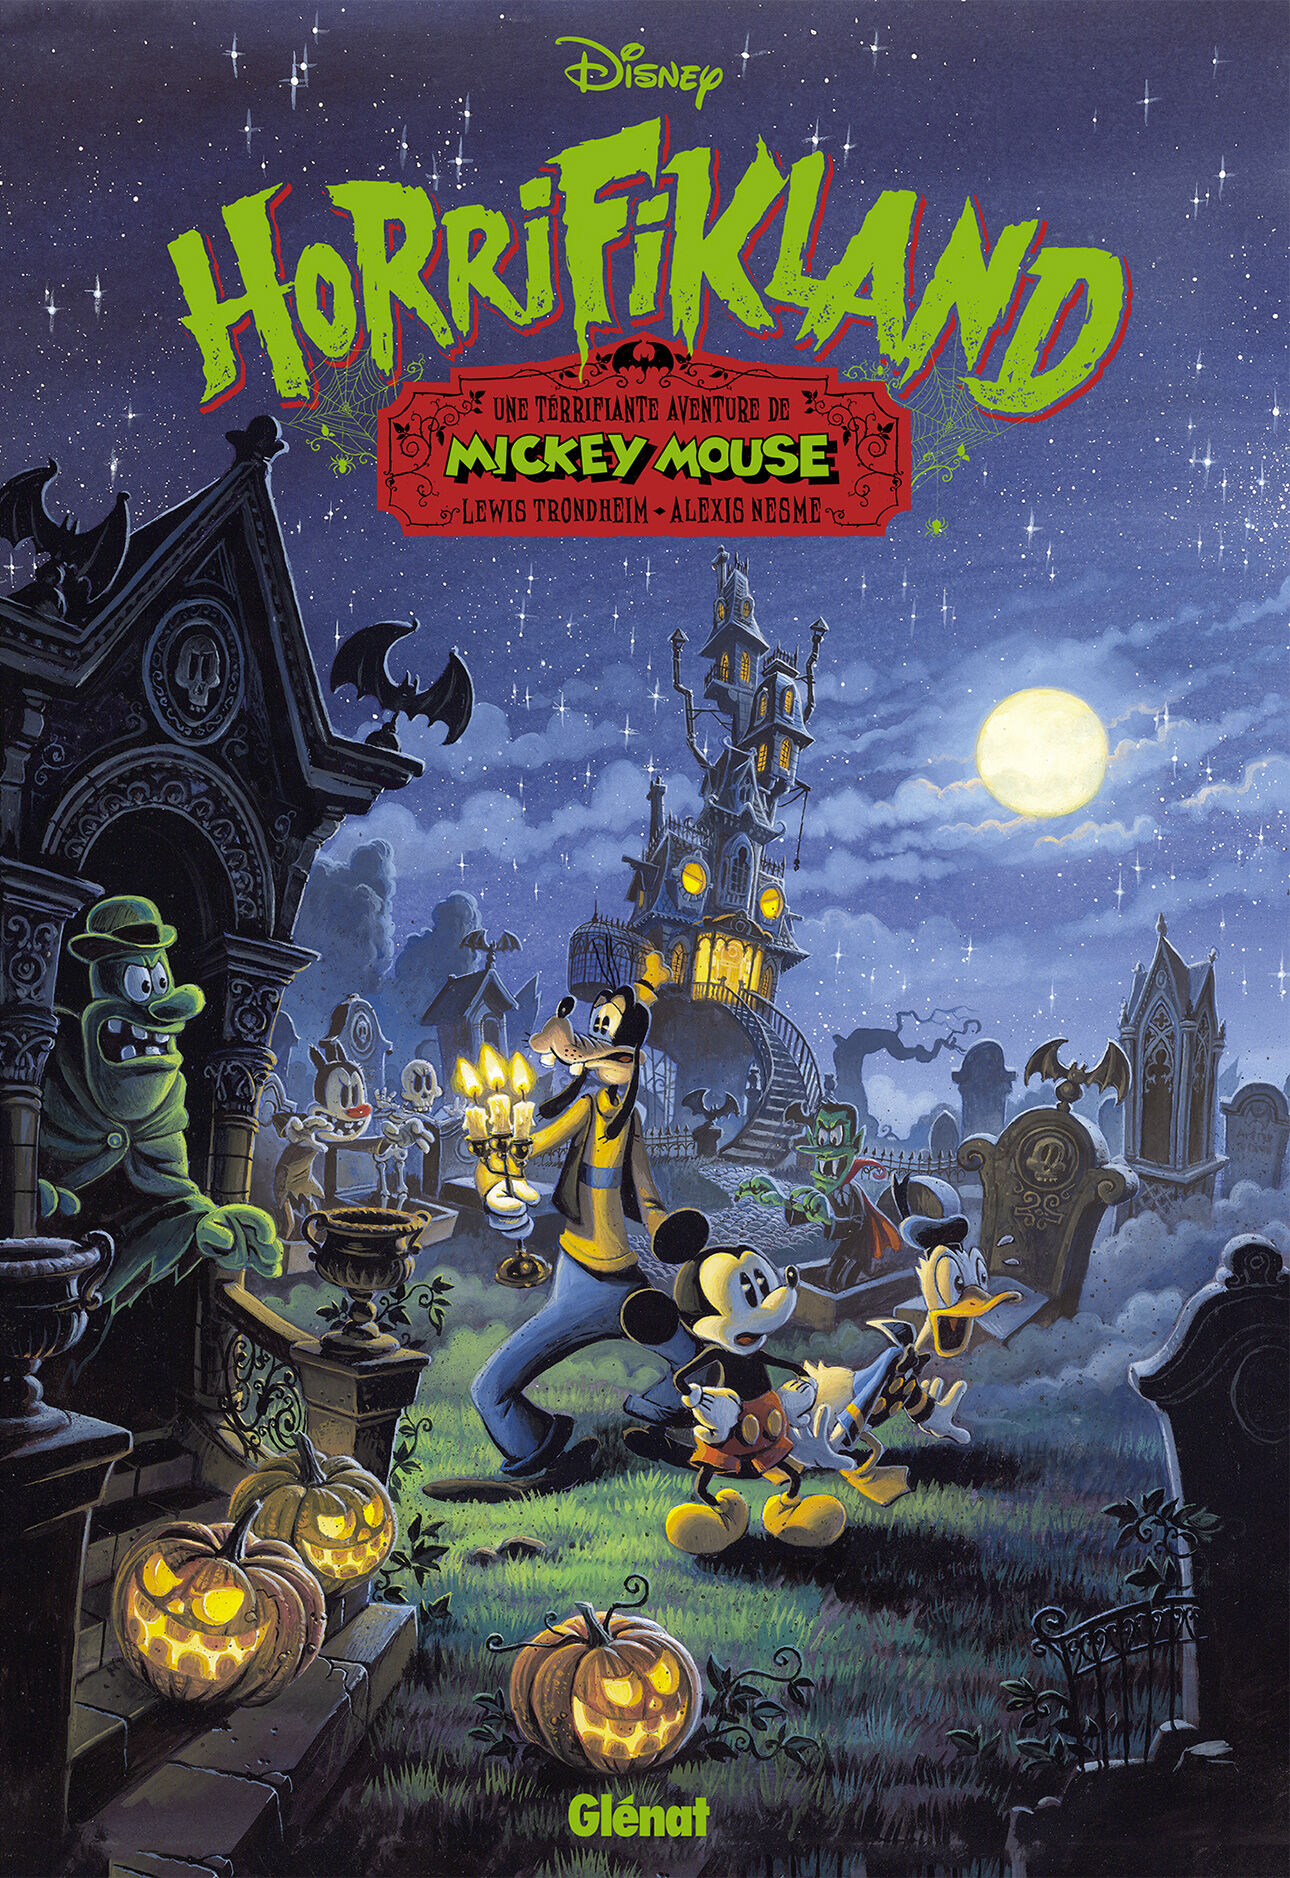 Couverture BD Horrifikland, Une terrifiante aventure de Mickey Mouse